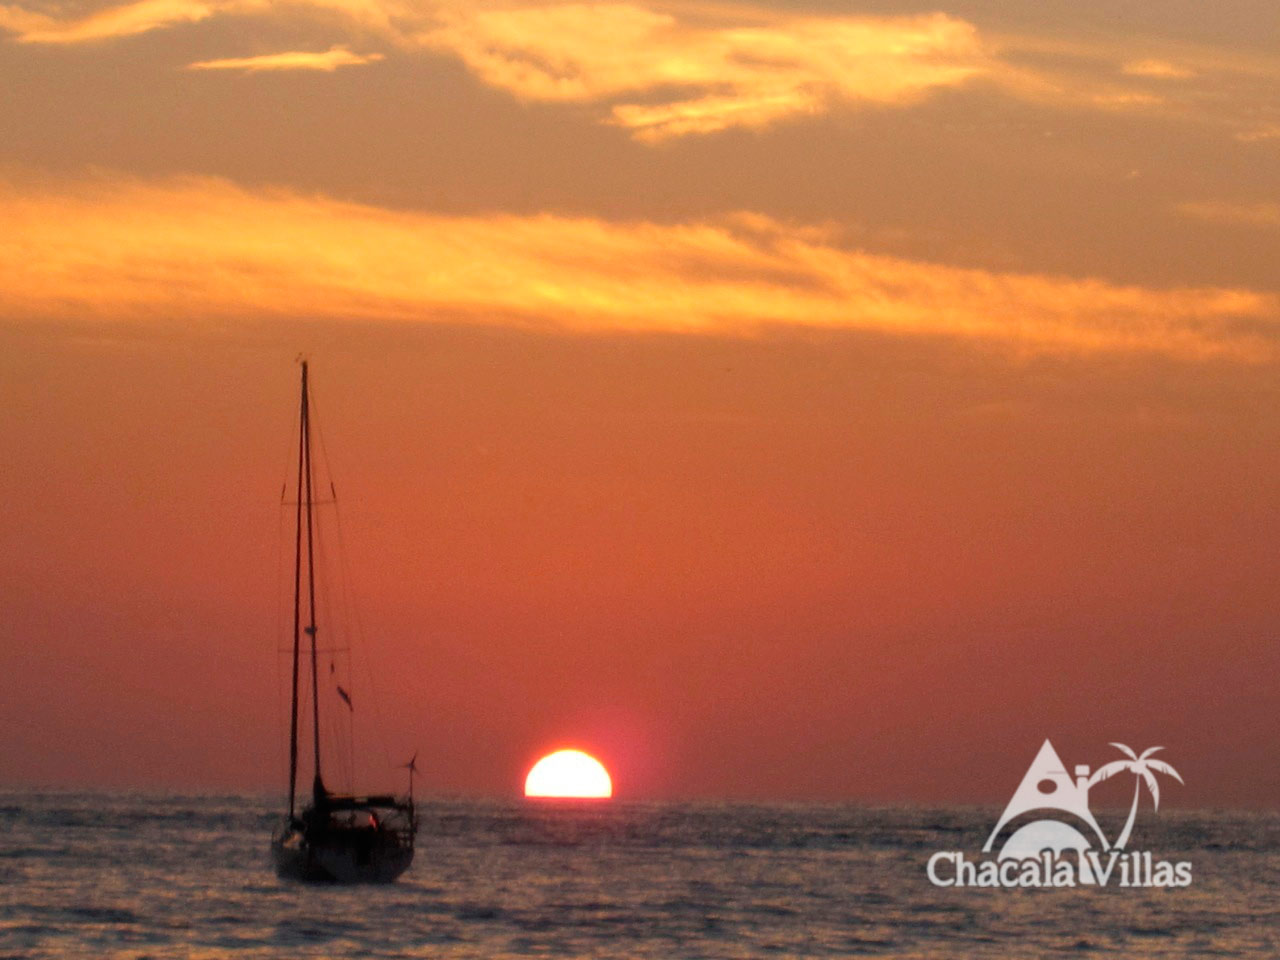 sunset-chacala-2-CHV-logo-web